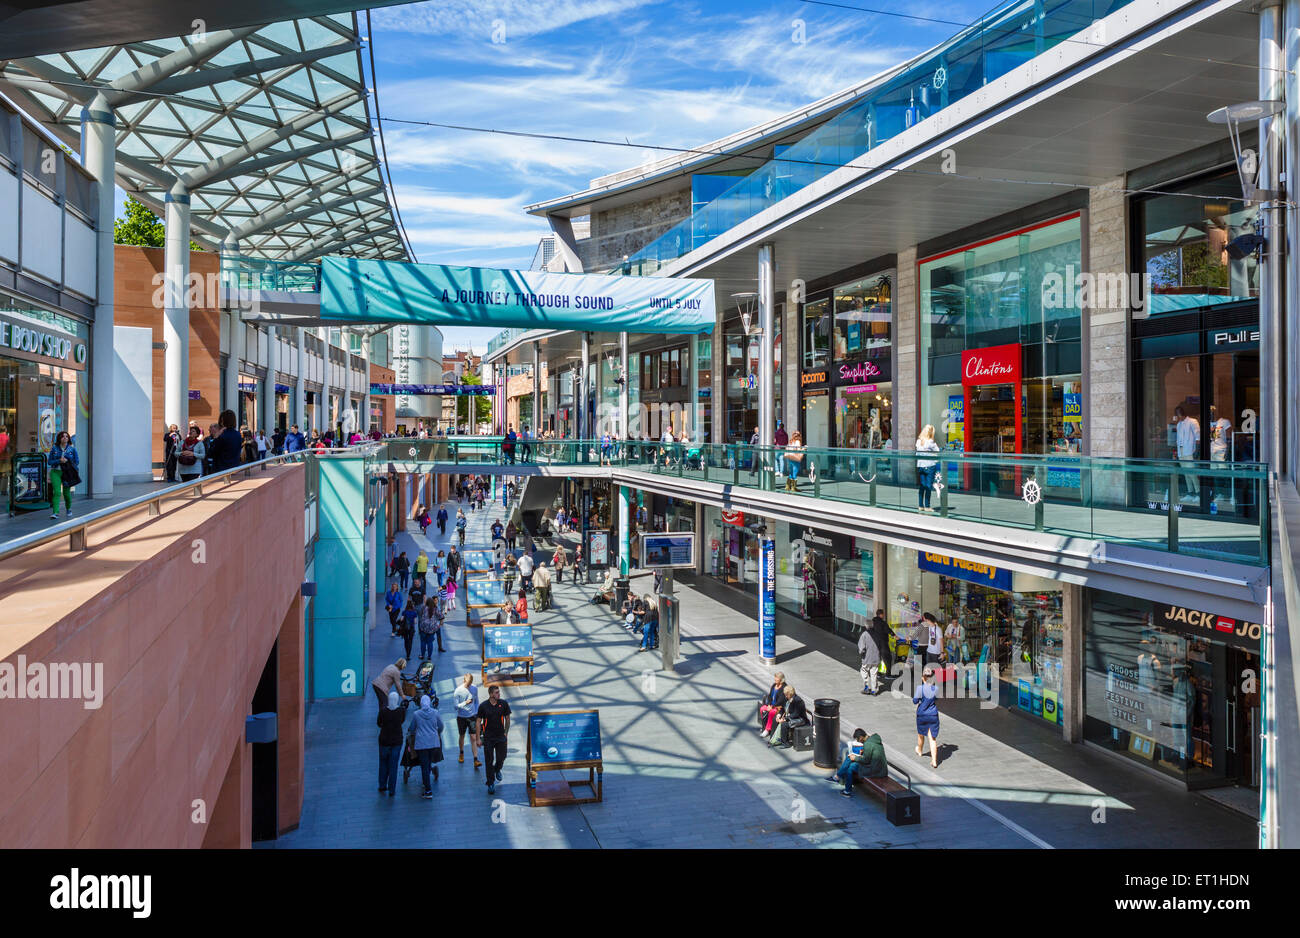 Stores in the Liverpool One shopping centre, Liverpool, Merseyside, England, UK - Stock Image